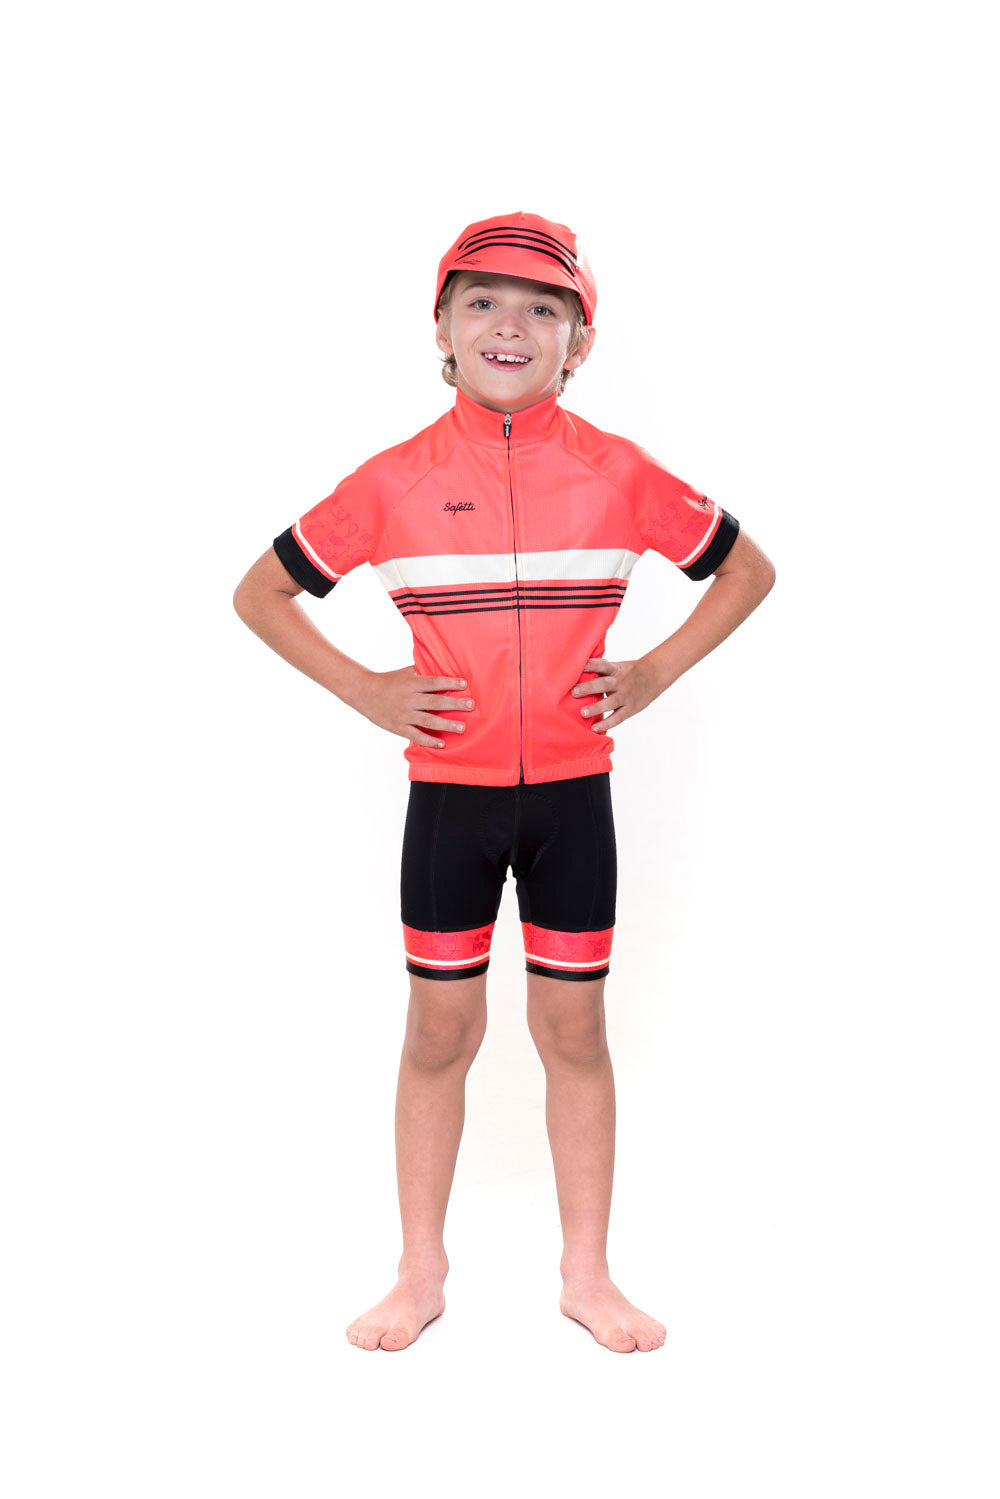 ESP'18 - ETÀ Moderna - Cycling Bib Short. Junior